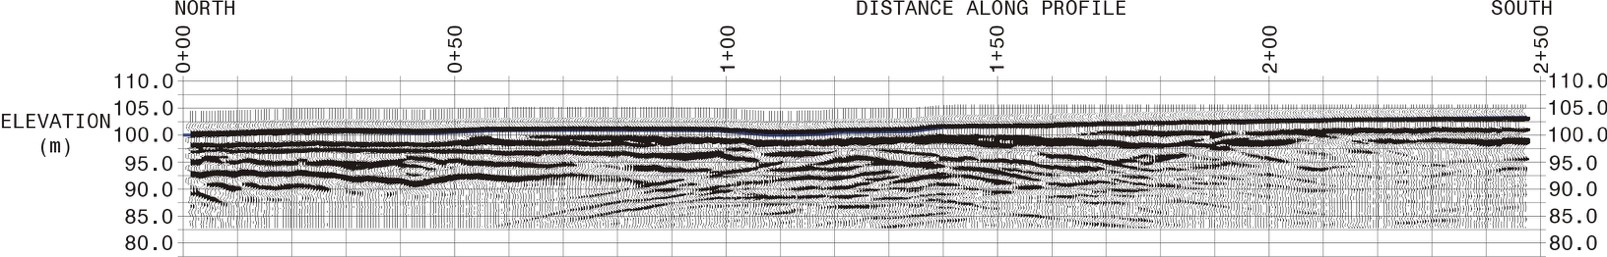 OVERLAPPING GEOPHYSICAL SURVEYS Fig8